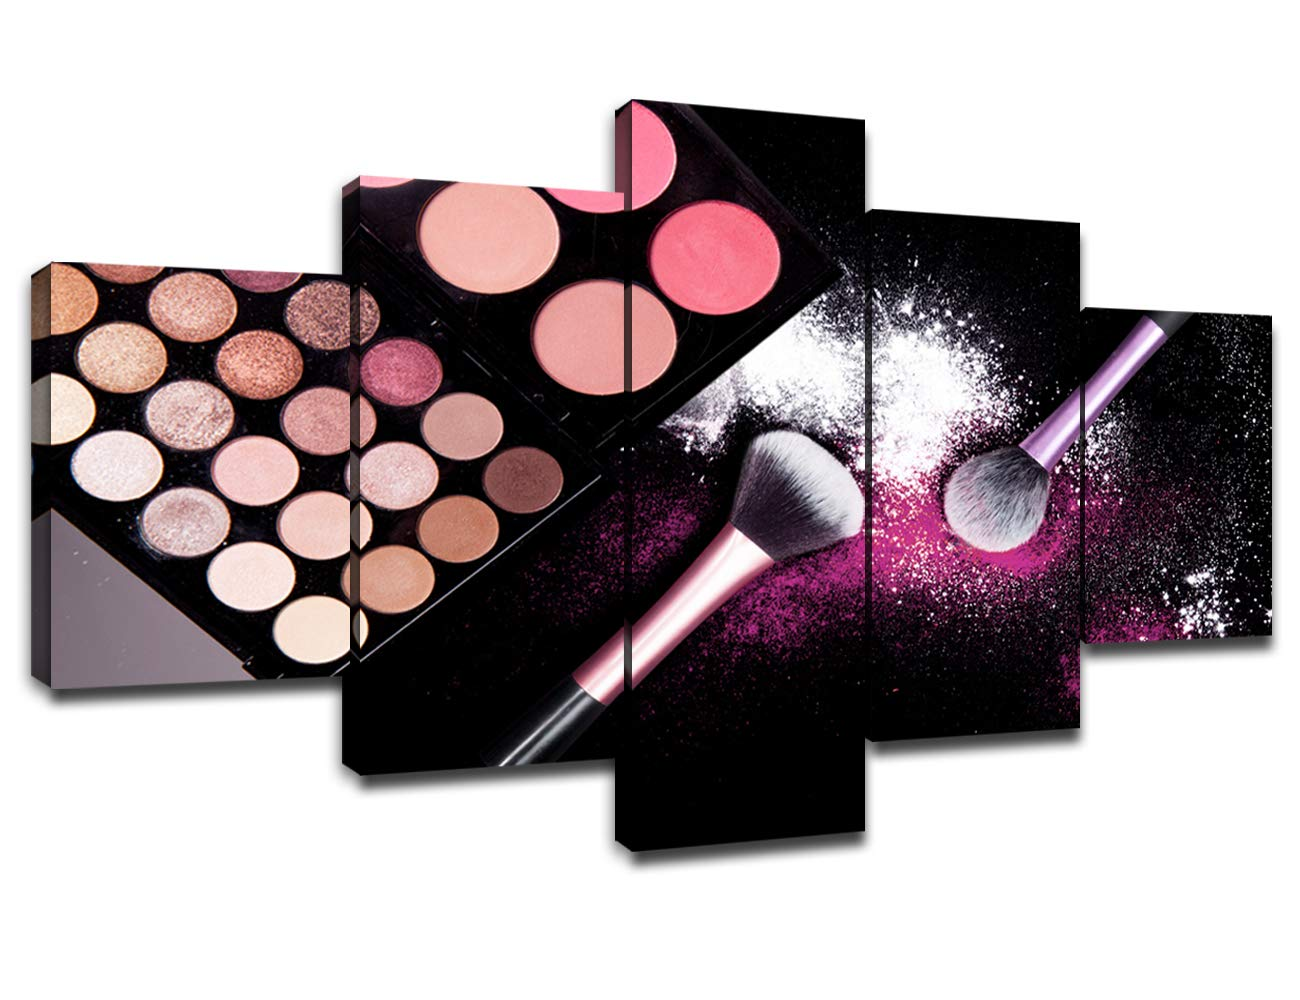 Makeup Wall Art Canvas Colorful Eye Shadow Palettes Picture for